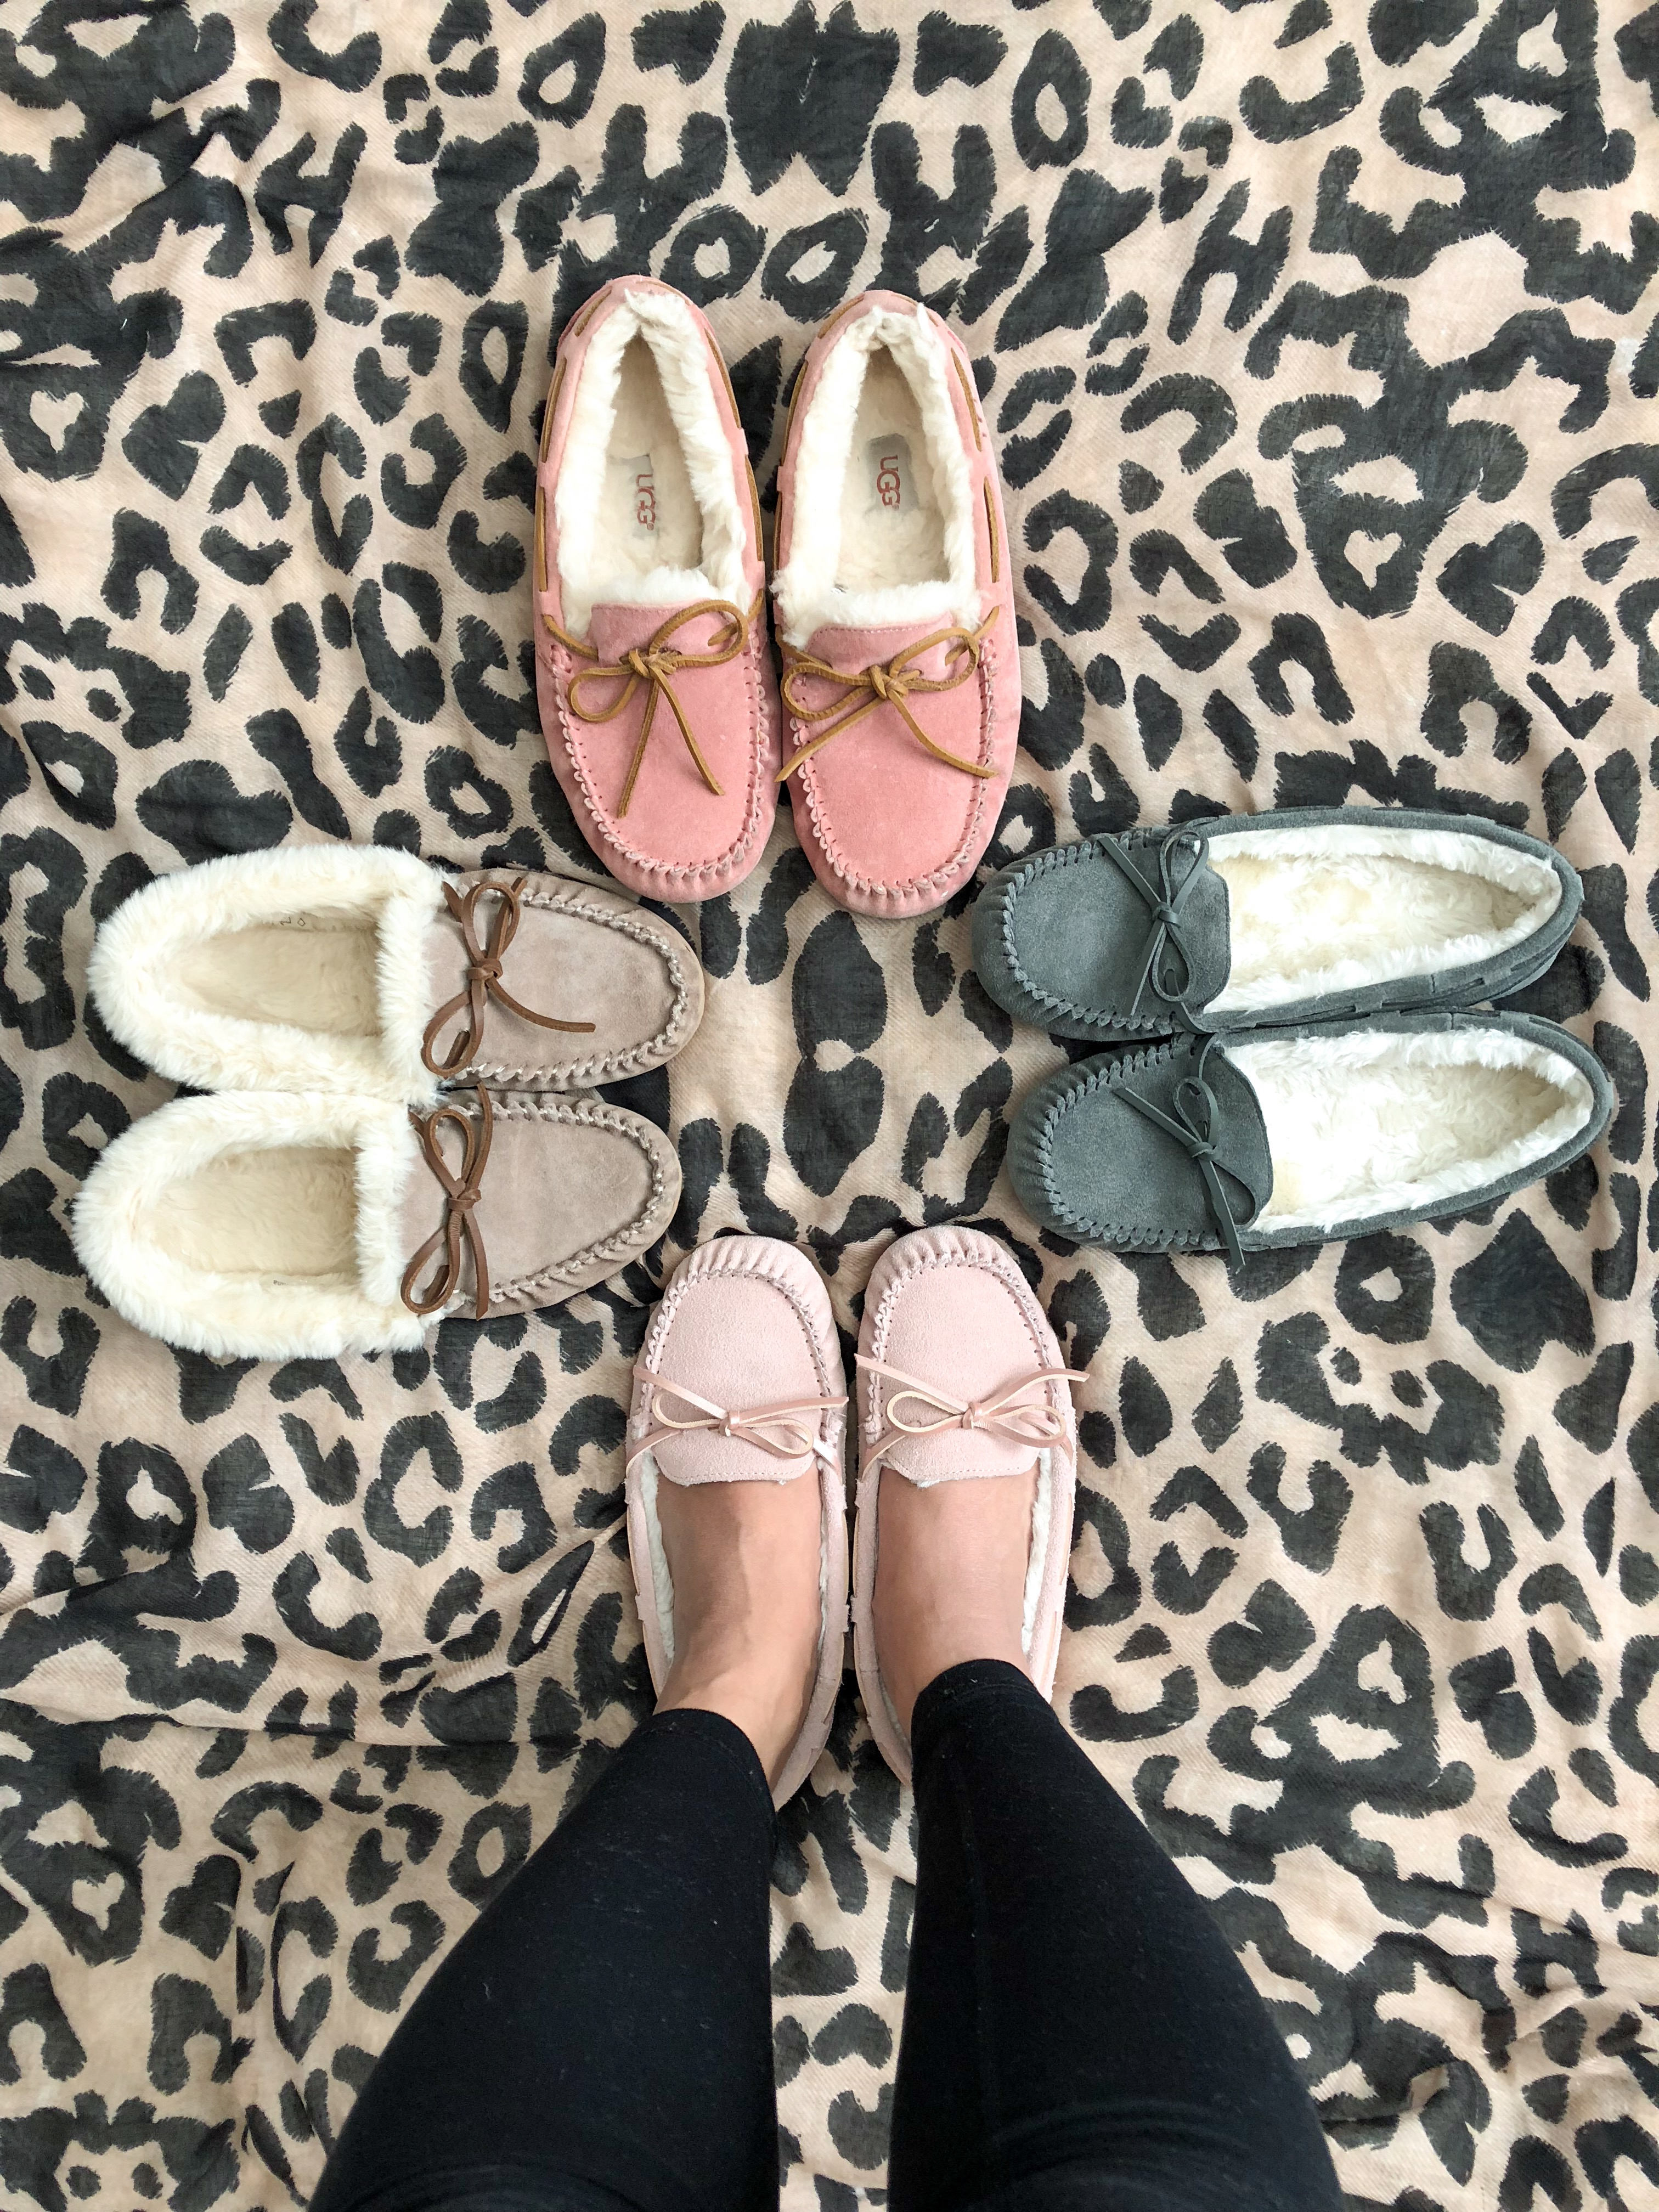 6b8327abcf6 Moccasin Slippers Review Guide